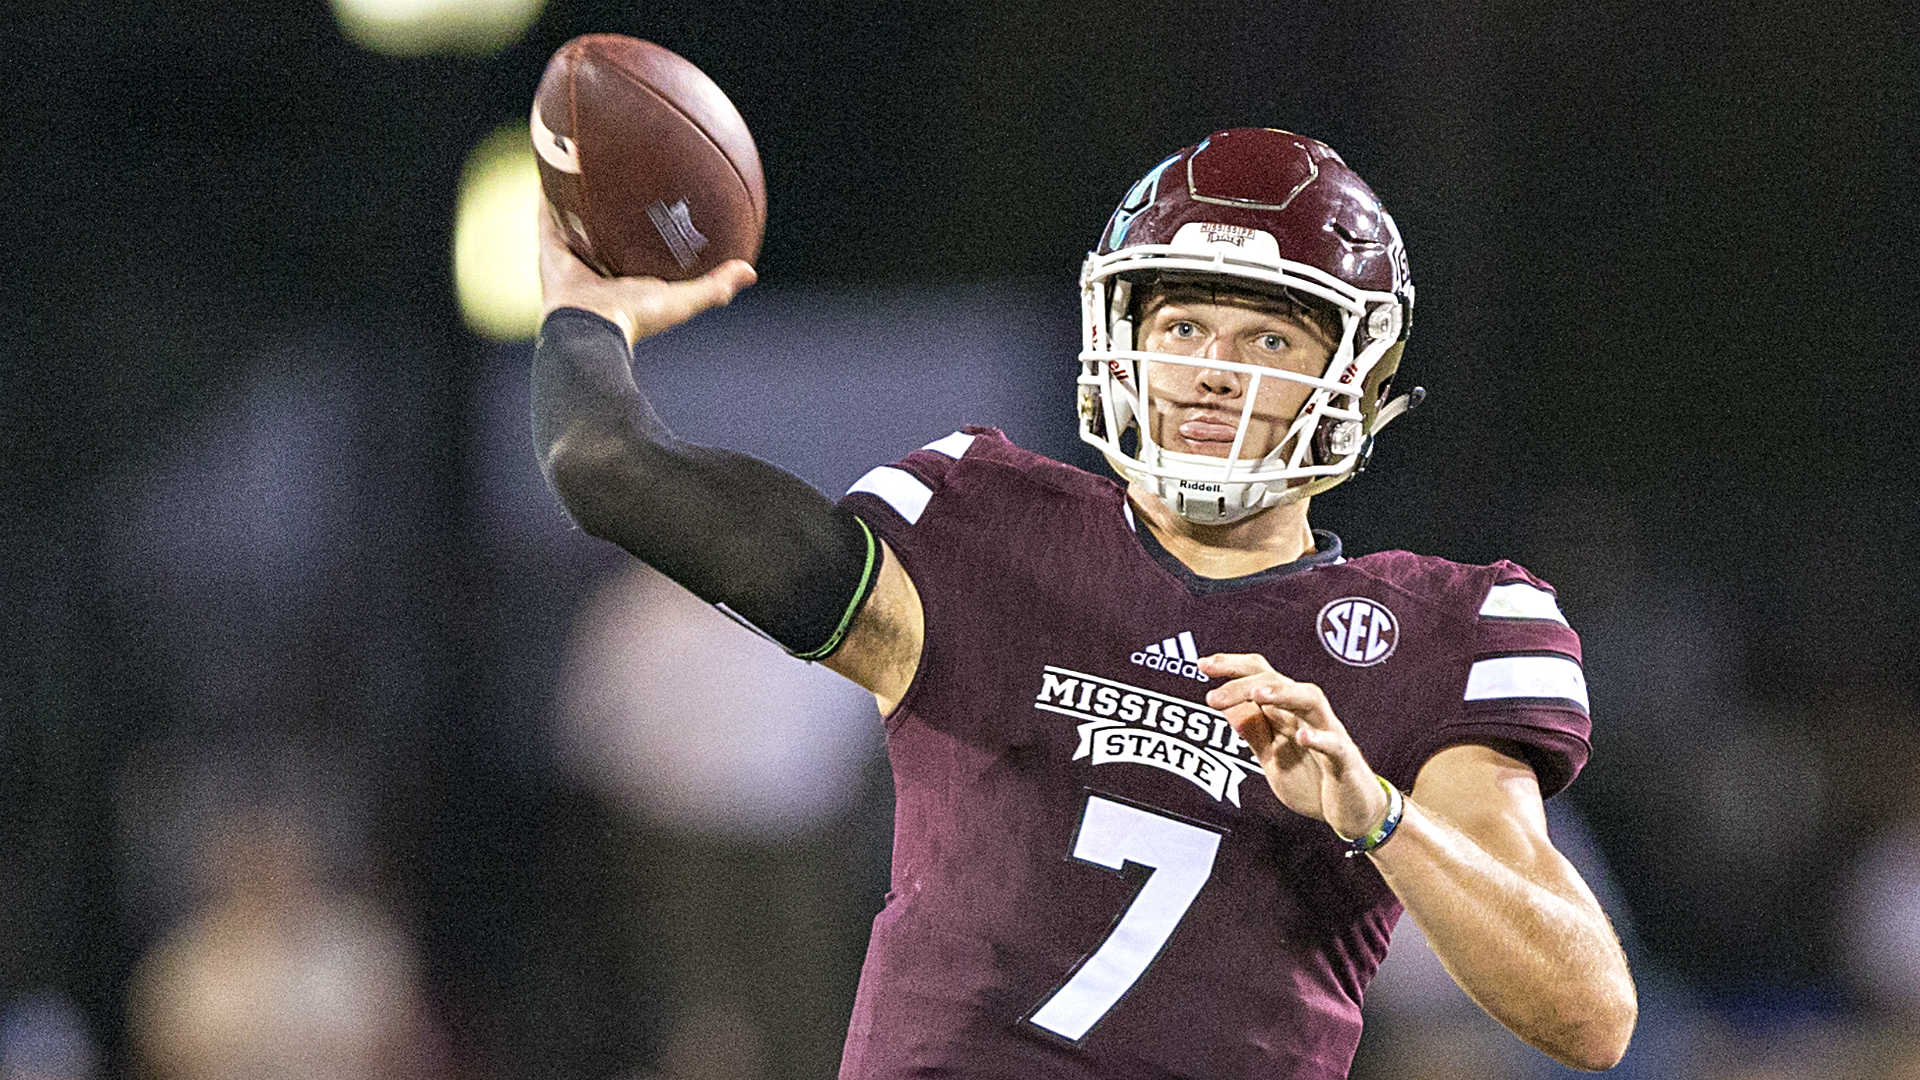 Nick Fitzgerald-091617-GETTY-FTR